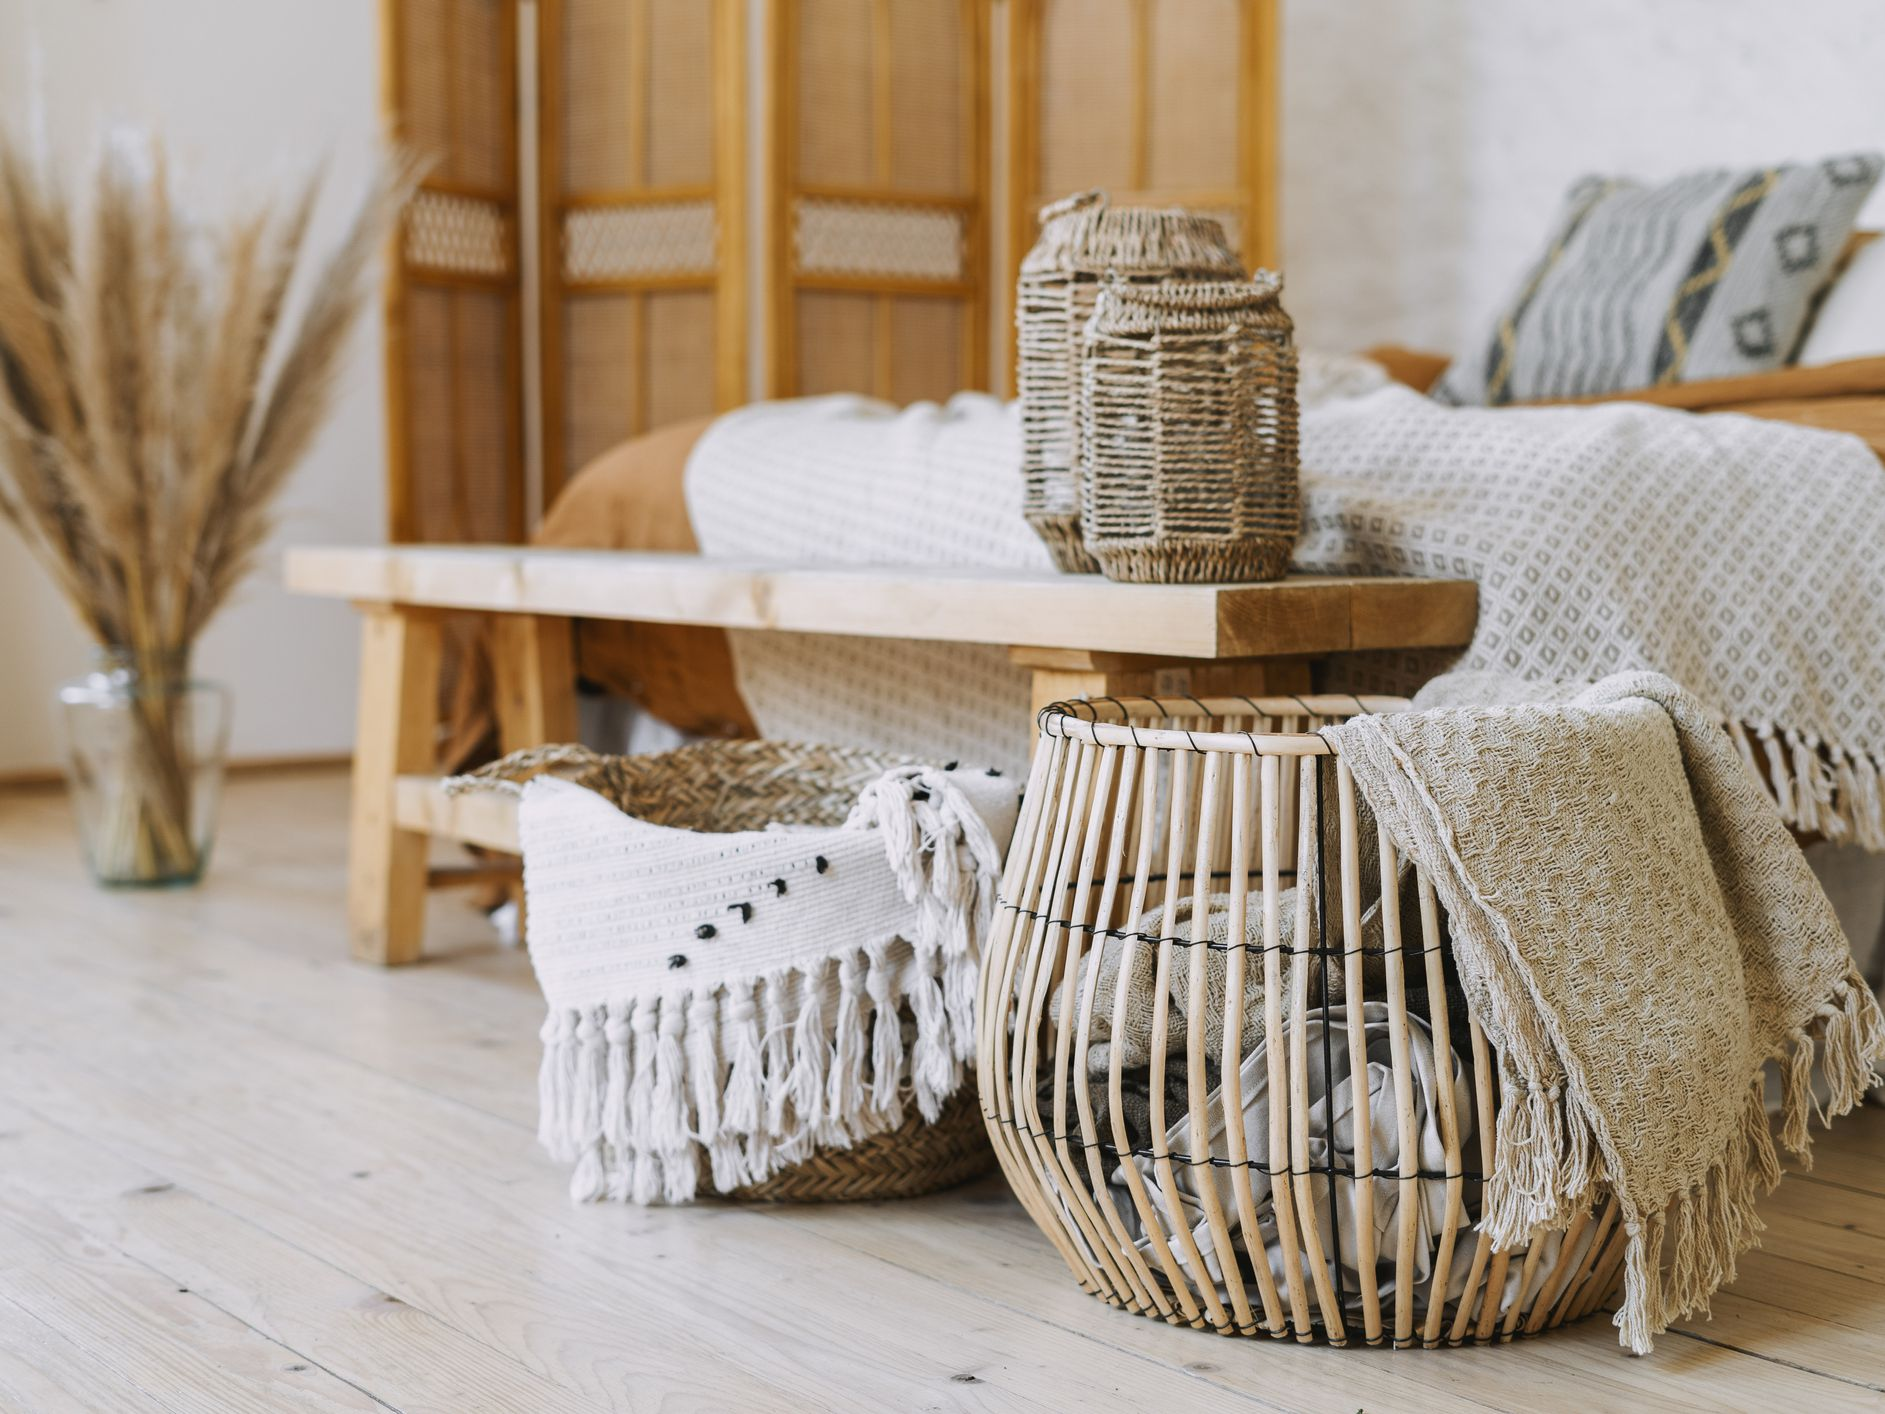 Top 5 Ways To Create A Boho Chic Home